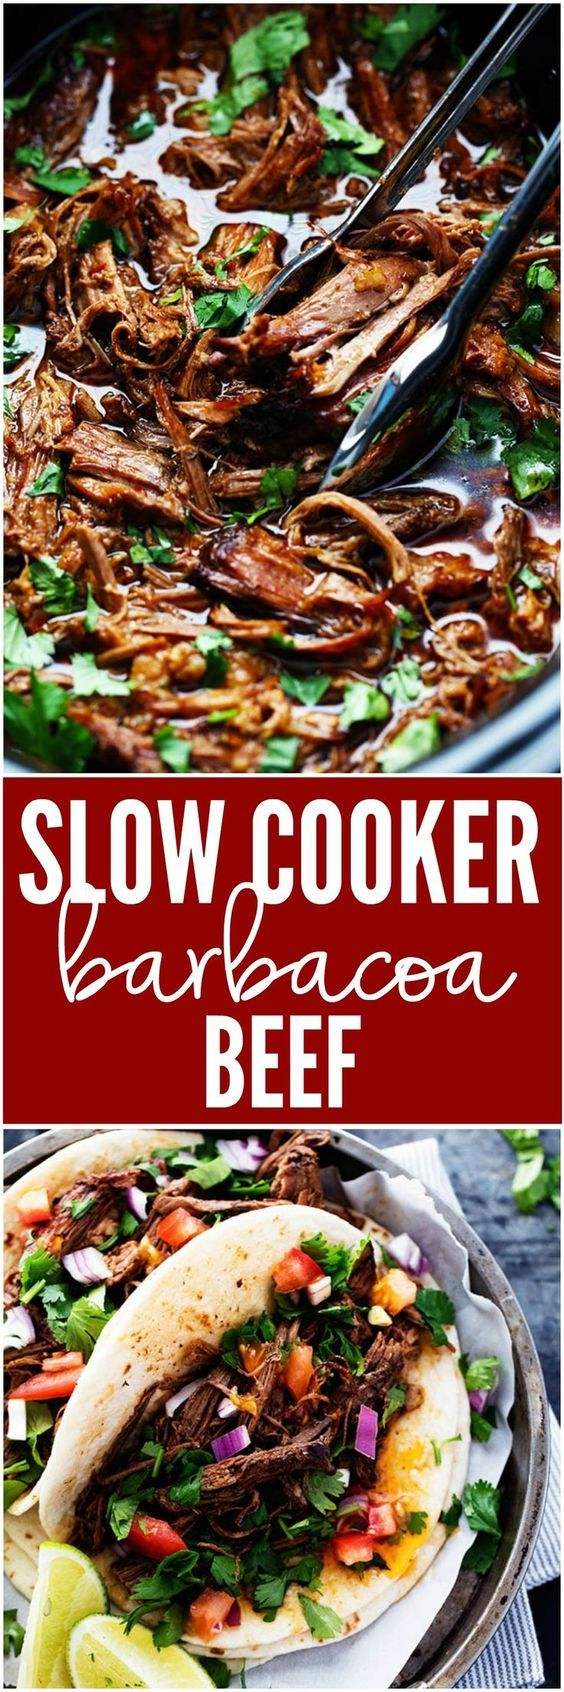 AMAZING and tender beef barbacoa that is better than any restaurant I have had! The flavor is amazing and it slow cooks to perfection!